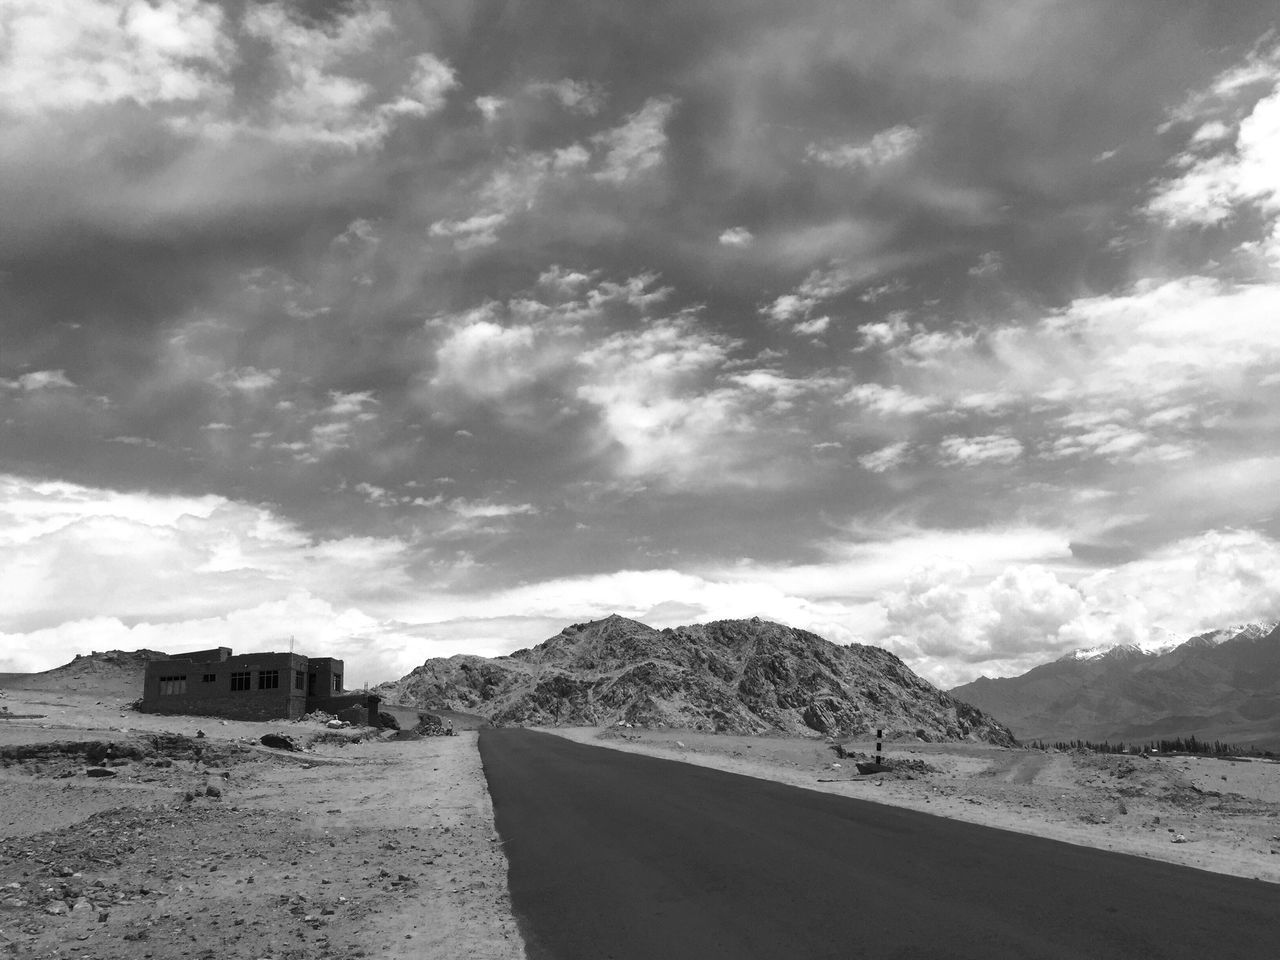 cloud - sky, mountain, sky, nature, day, scenics, sand, outdoors, mountain range, no people, tranquility, beauty in nature, landscape, road